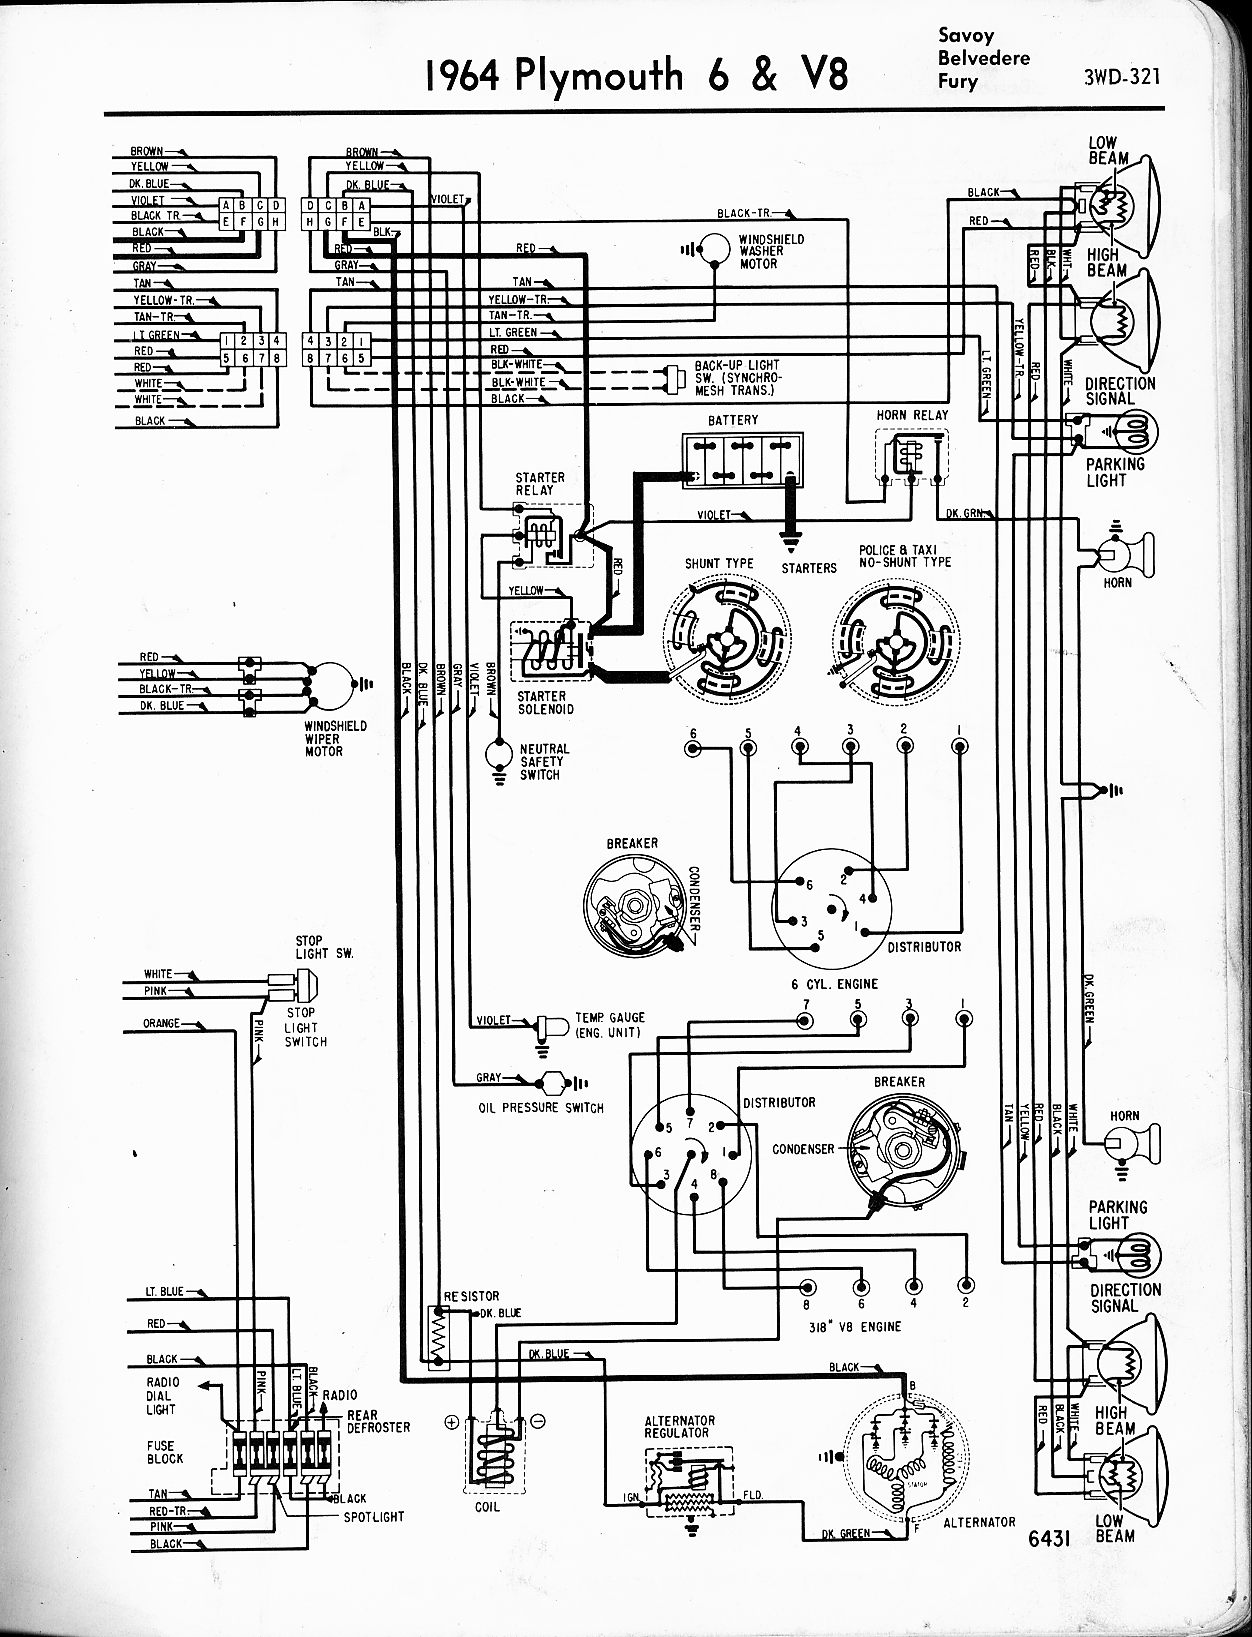 Diagram 1948 Plymouth Wiring Diagram Full Version Hd Quality Wiring Diagram Diagrammoroo Abacusfirenze It